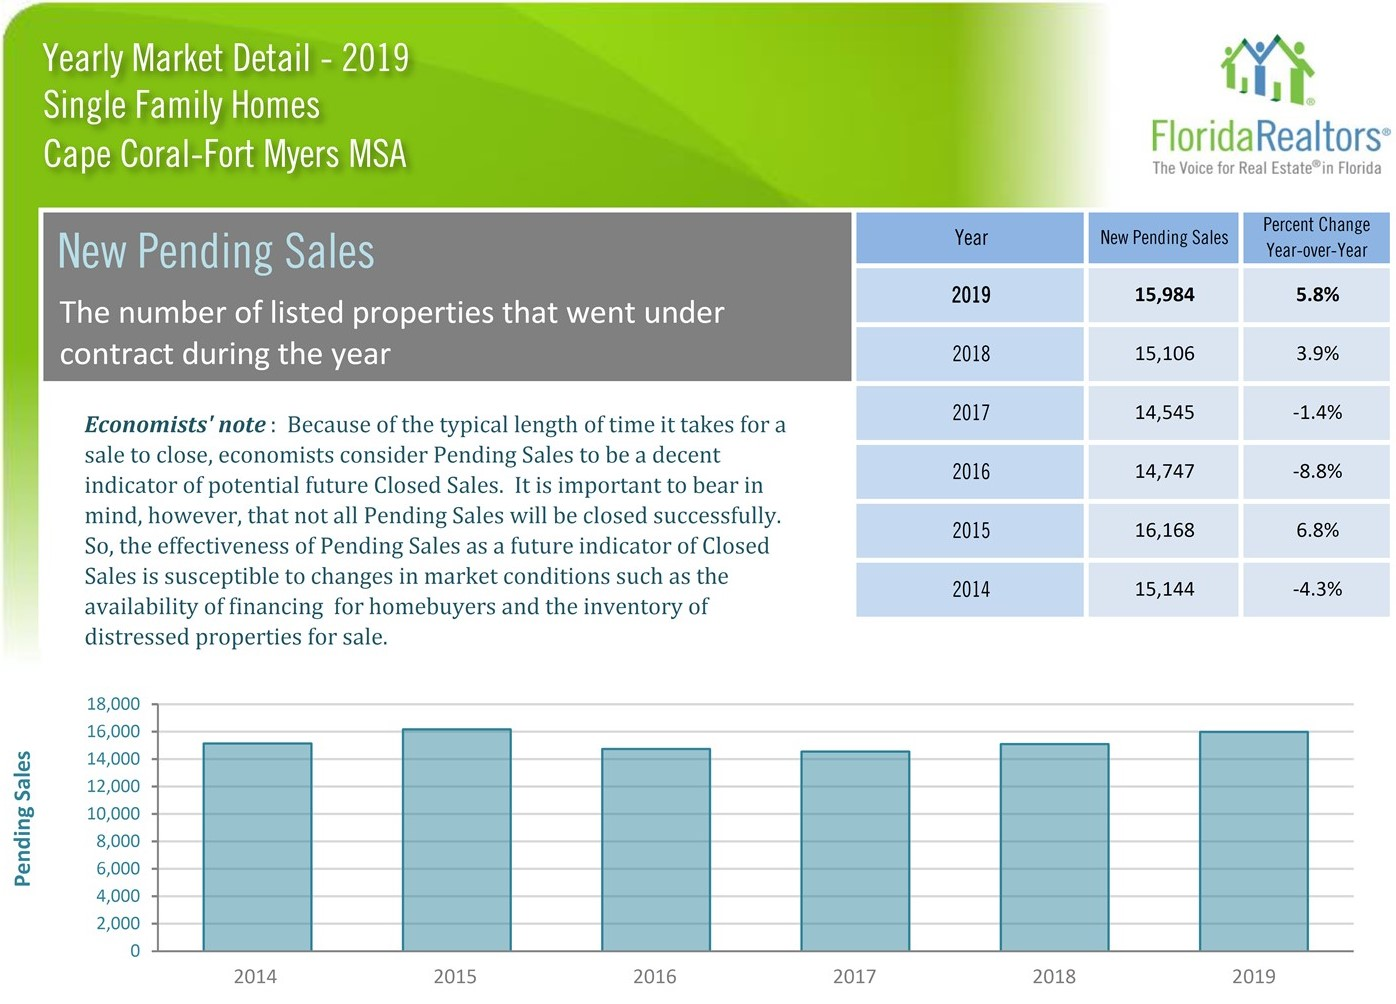 2019 Market Statistics for single family home new pending sales in the Cape Coral Fort Myers area